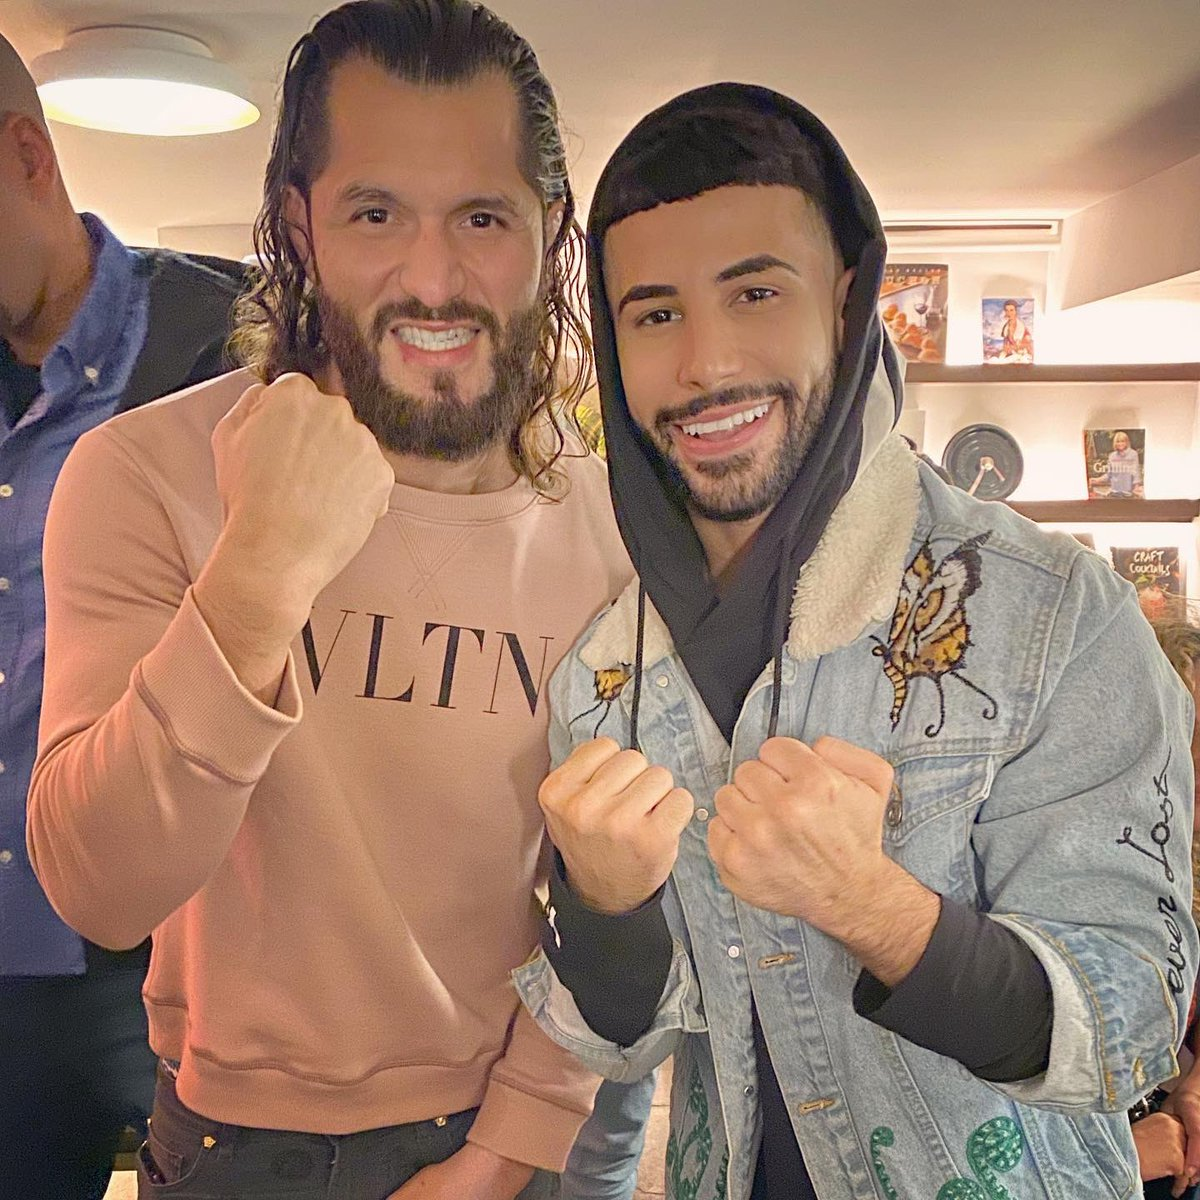 With the baddest mother fu**er !!!! Pleasure meeting you my brotha ❤️ @GamebredFighter